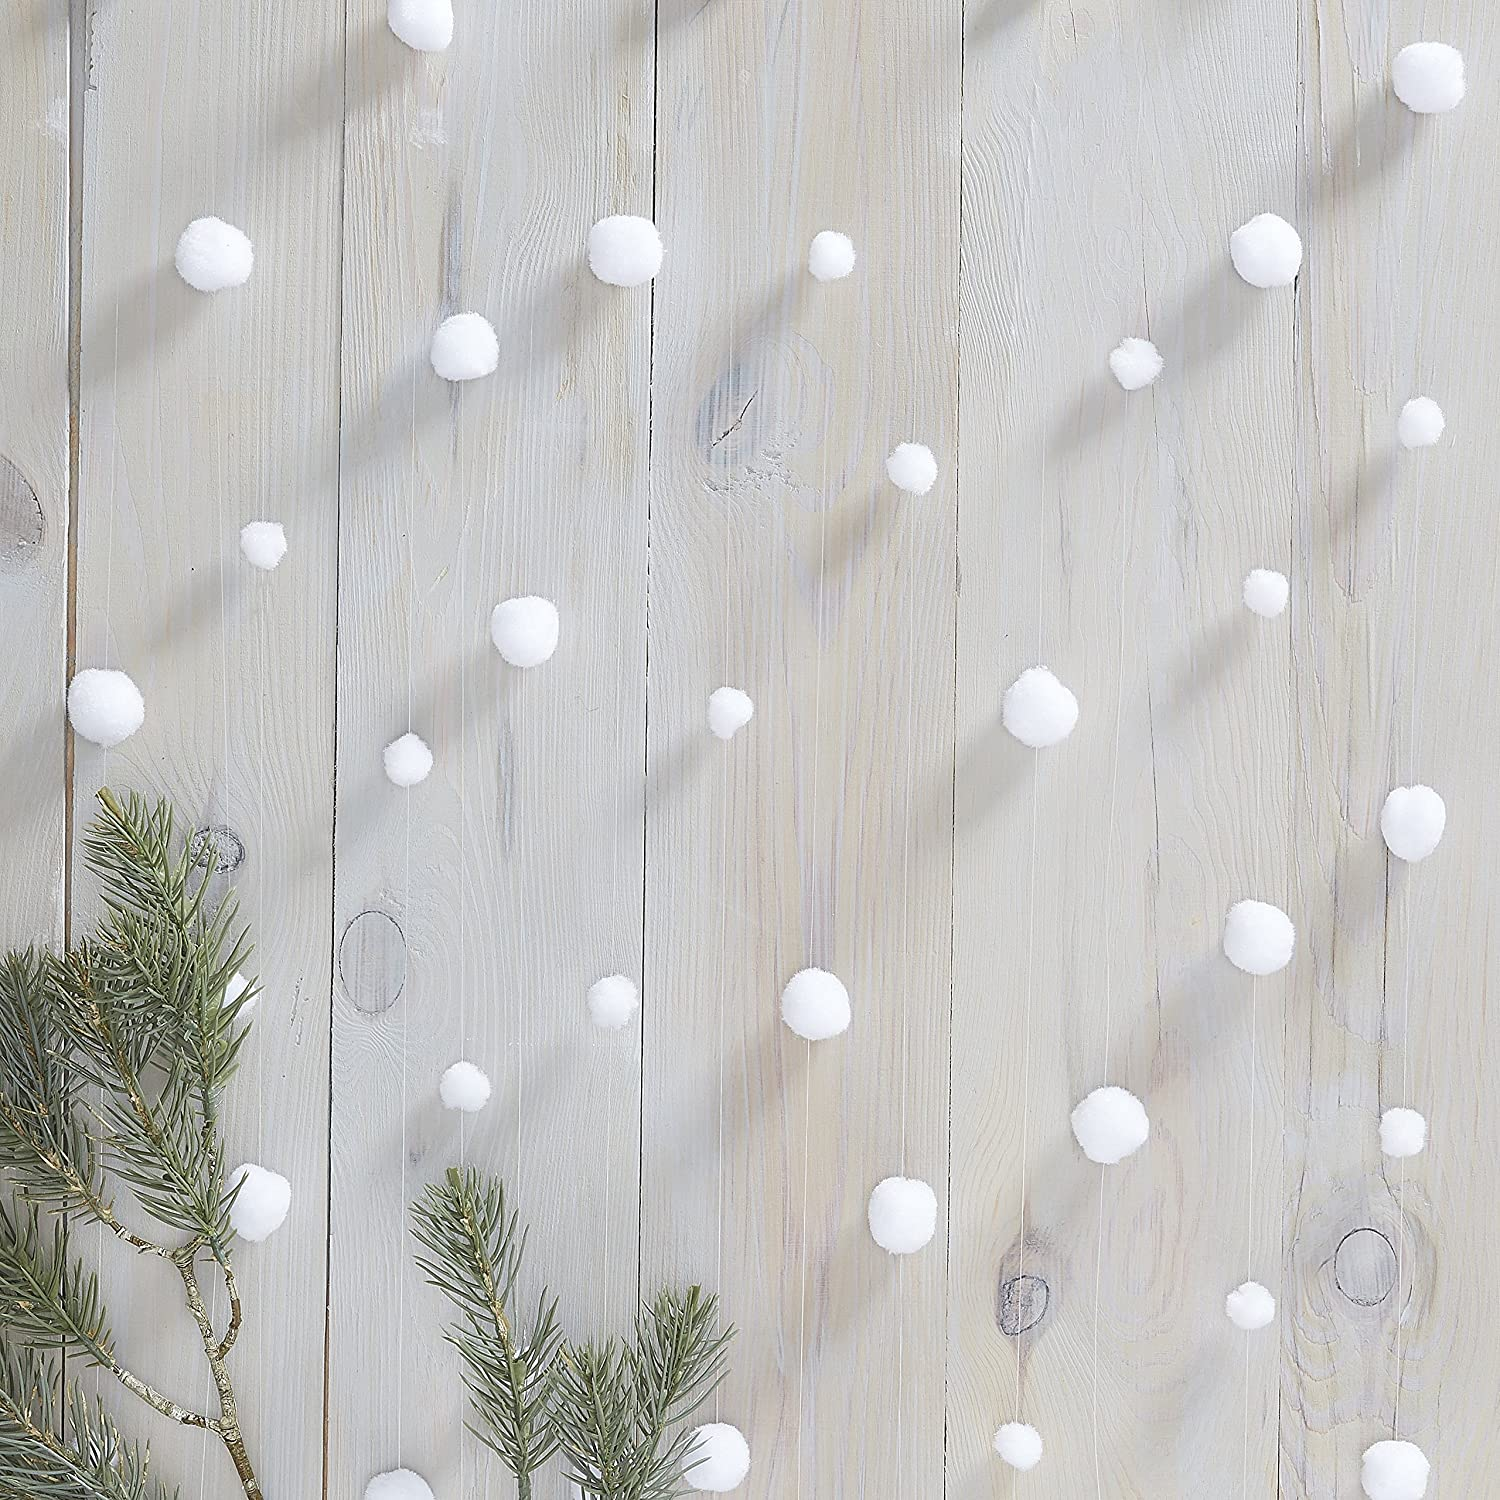 Ginger Ray White Snowball Christmas Garland Festive Room Party Decorations Bunting Banner - 6 Pack - Rustic Christmas